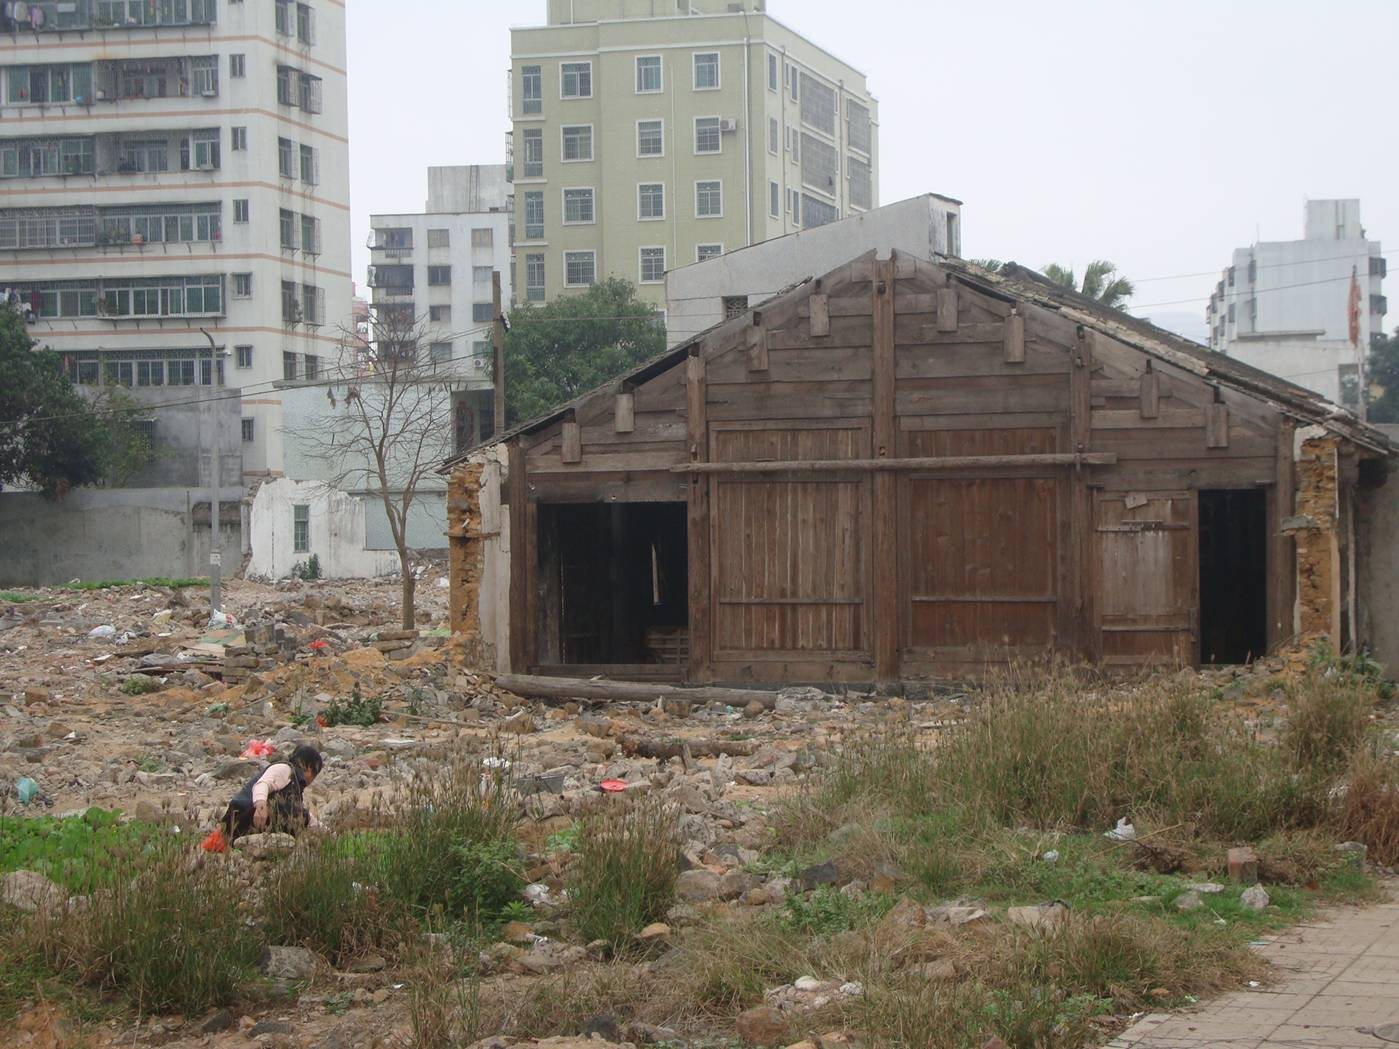 Picture: The old farm building, a sad remnant of an agricultural lifestyle now lost to and surrounded by urbanization.  Haikou, Hainan Island, China